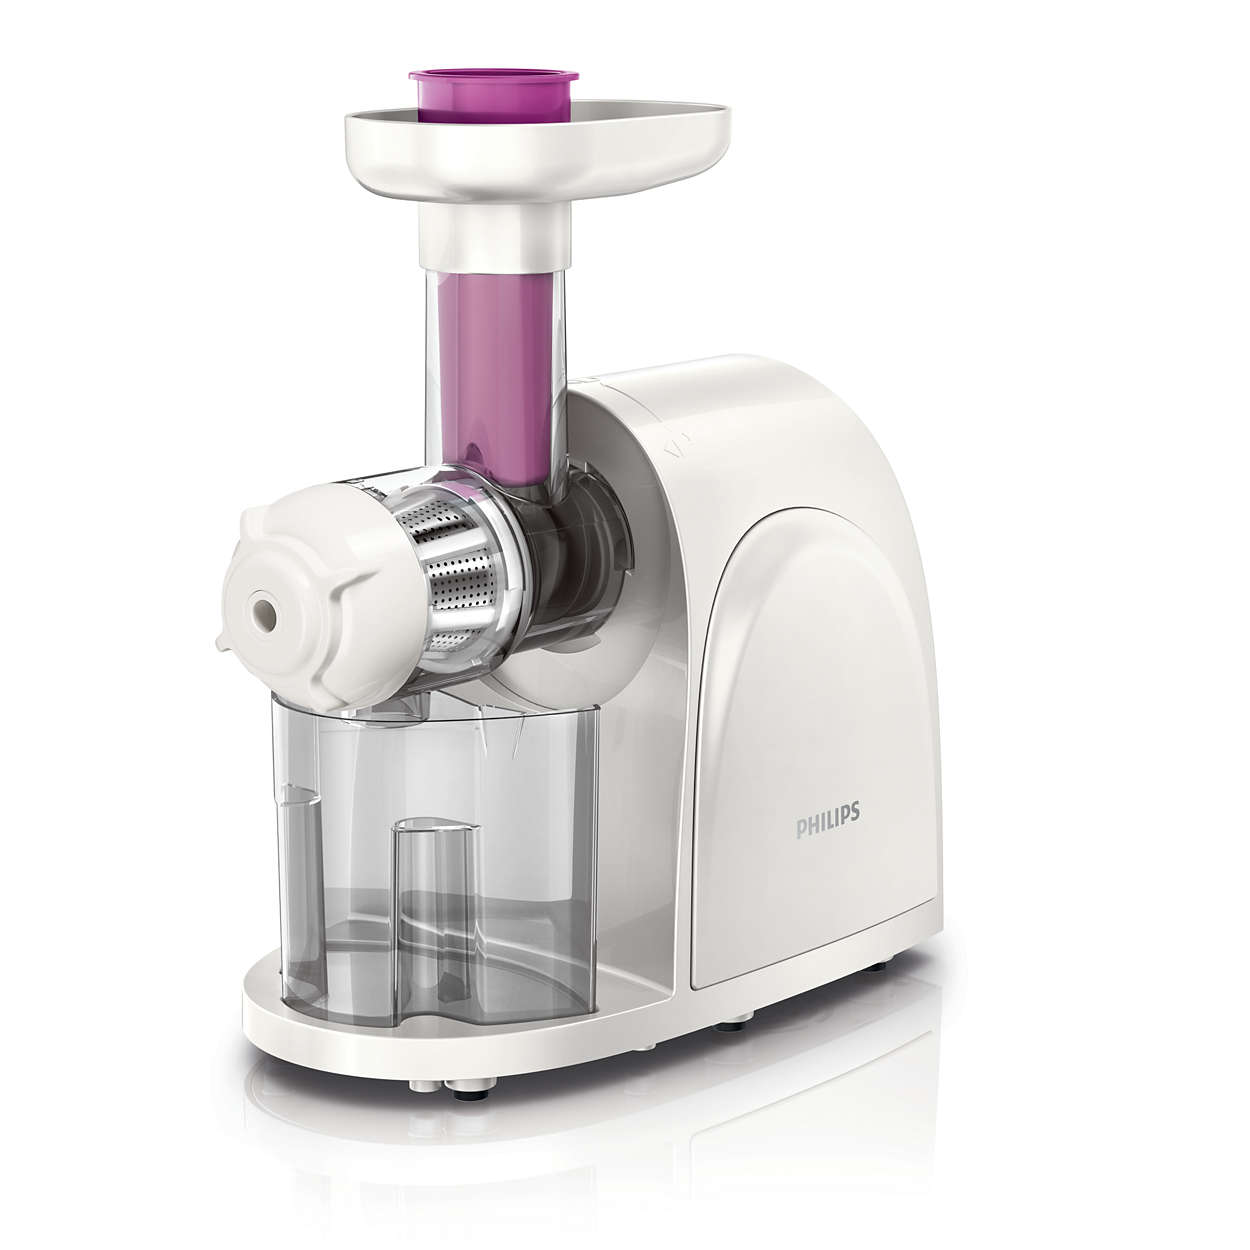 Klarstein Fruit Berry Slow Juicer 400w : viva Collection Slow juicer HR1830/03 Philips